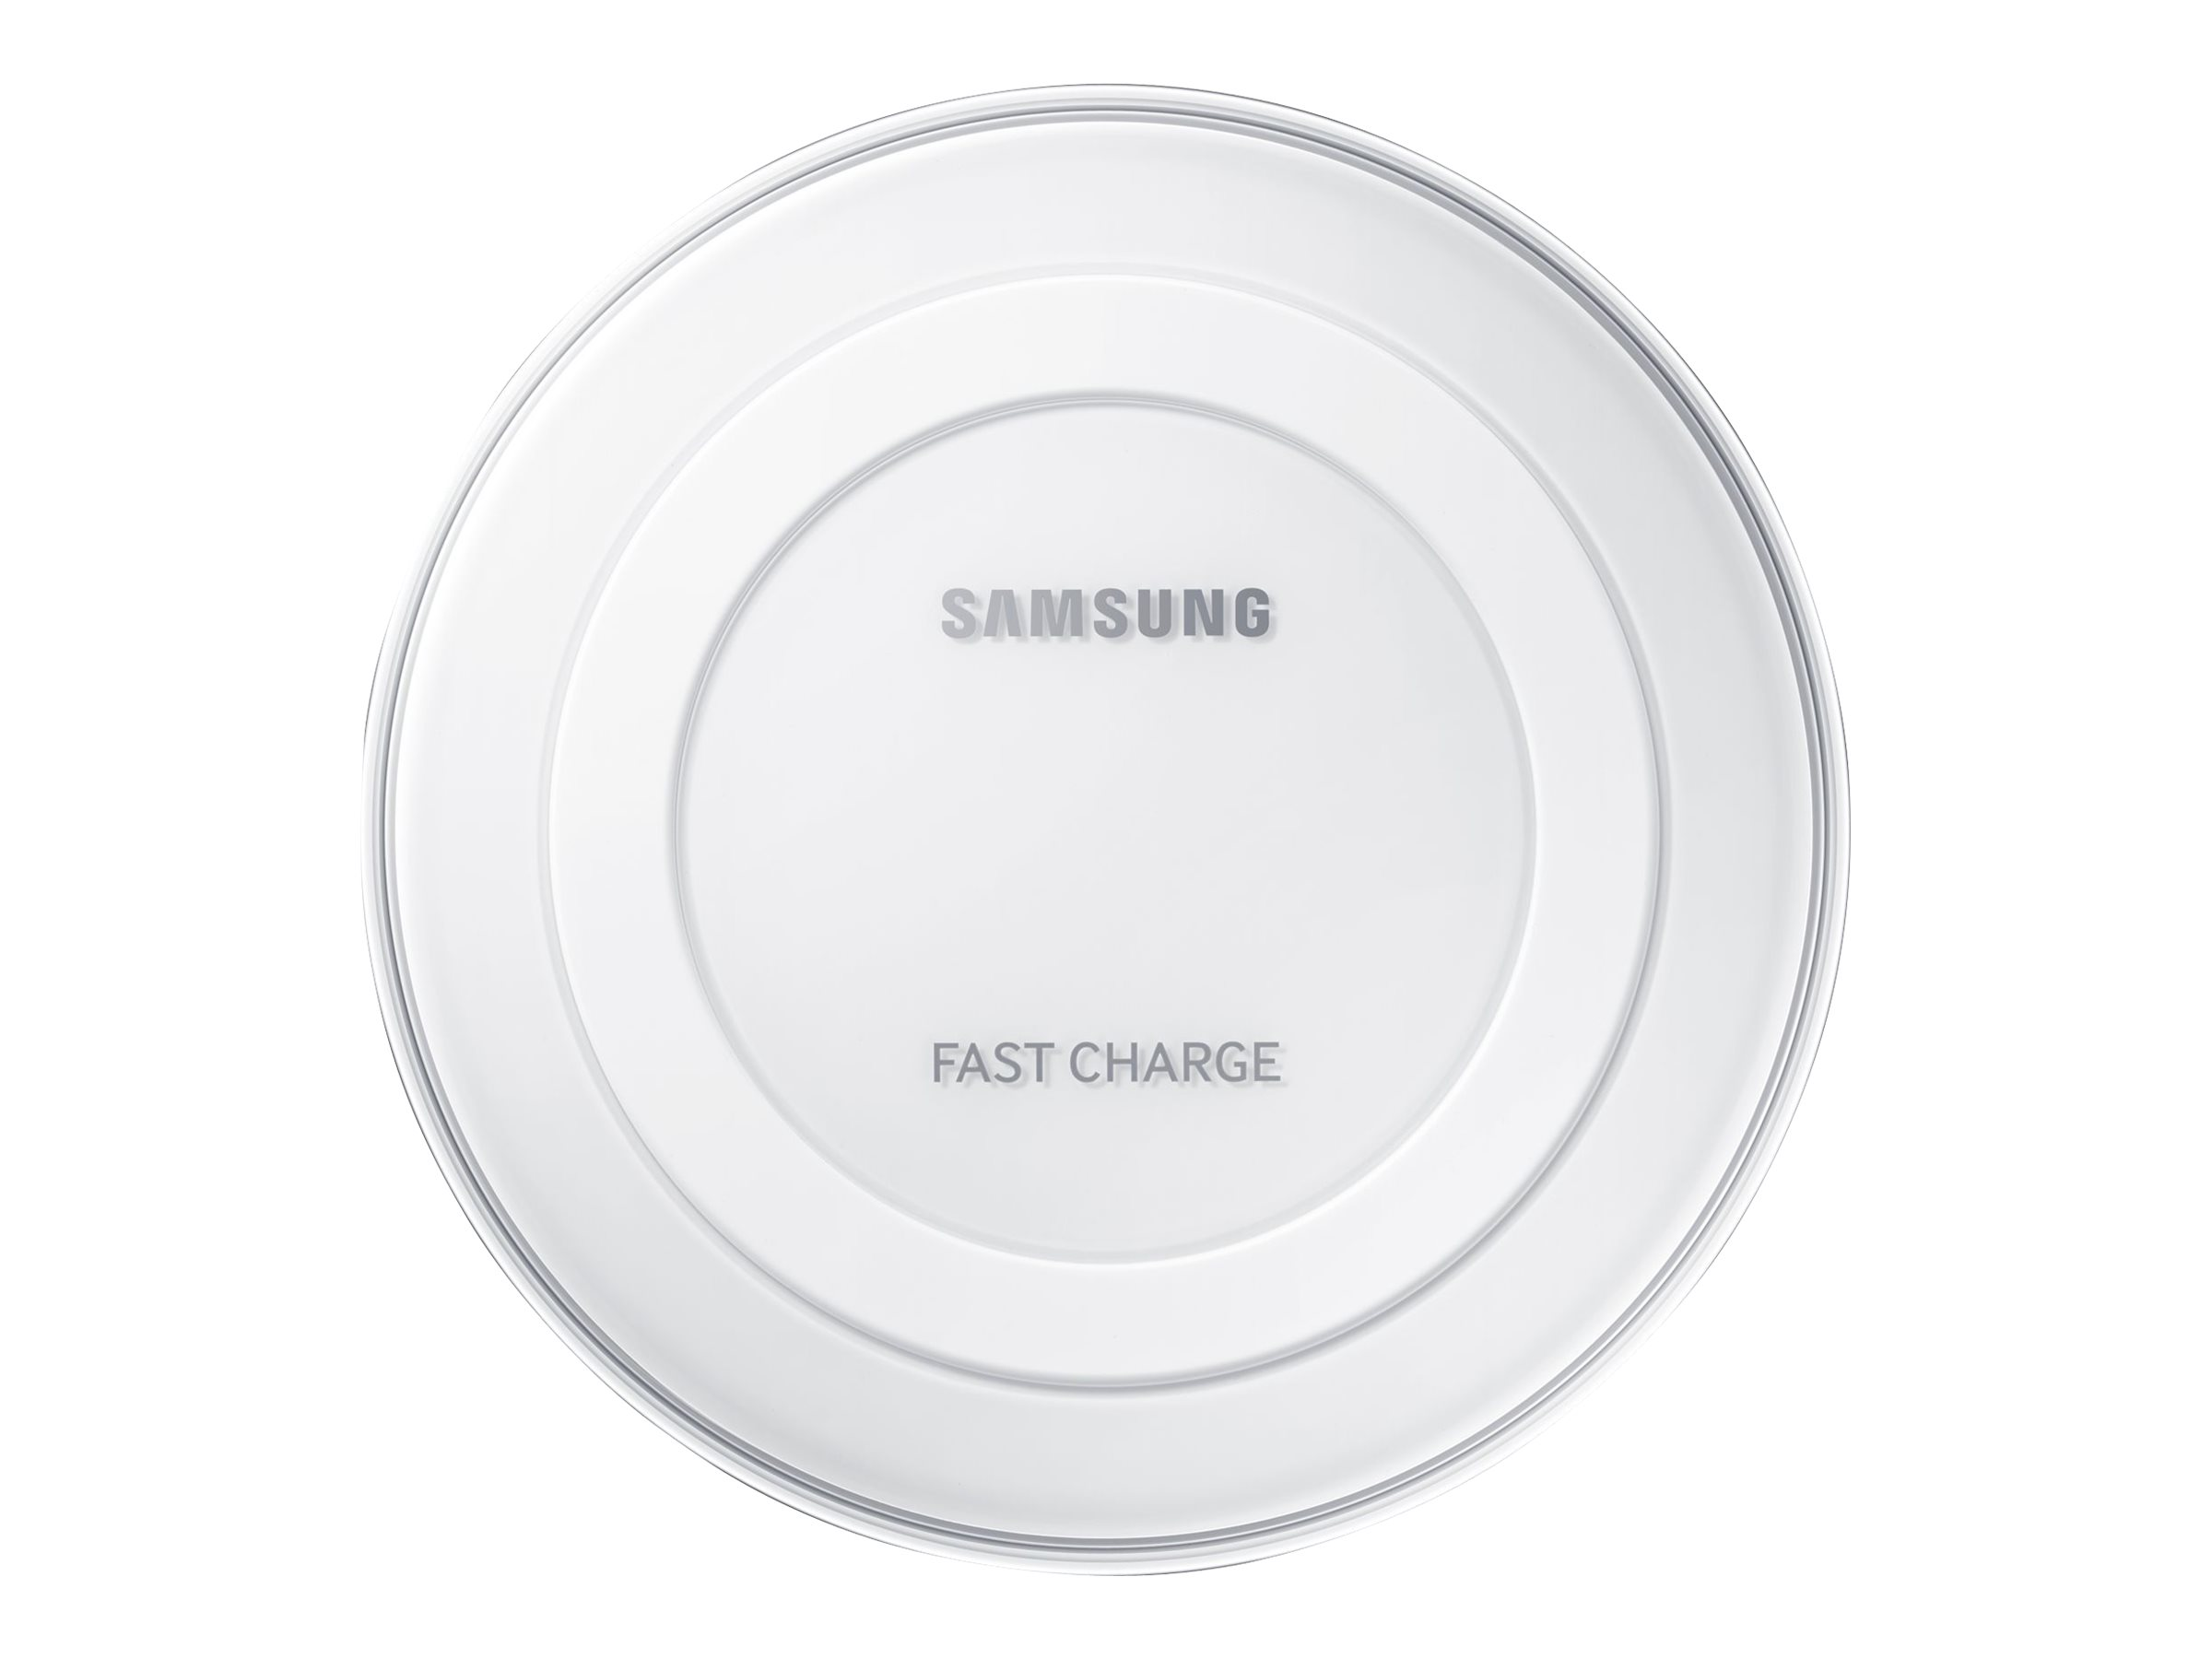 Samsung Wireless Charger EP-PN920 wireless charging mat